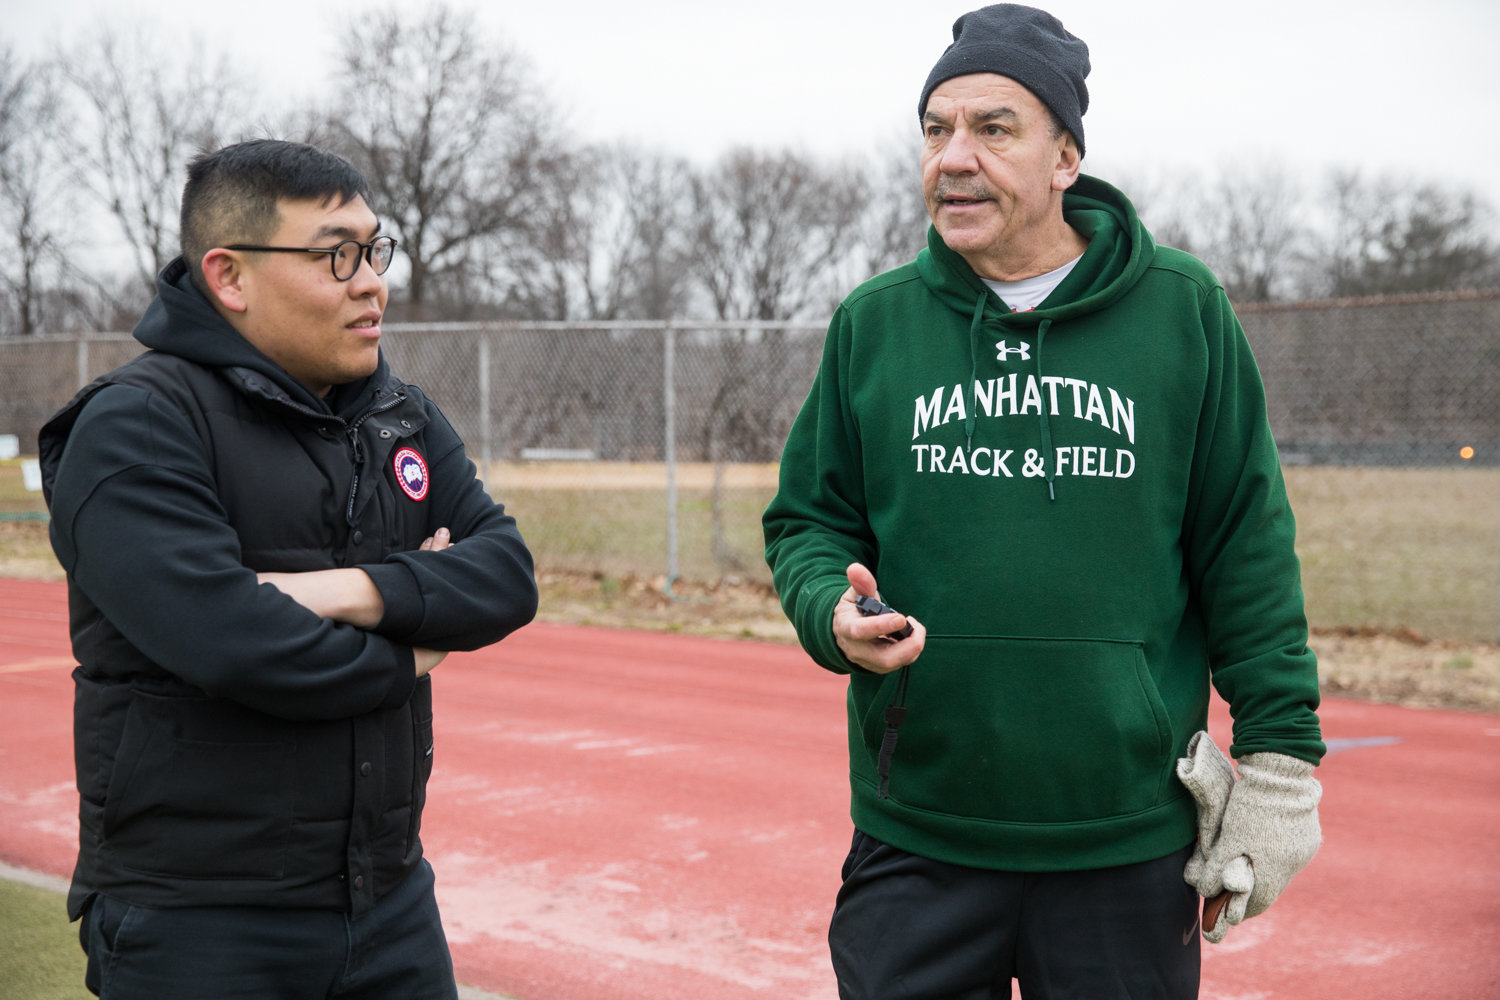 Manhattan College running coach Matt Centrowitz talks with Chinese interpreter Zhang Jiyue during a training session at Van Cortlandt Park. Zhang facilitates communication between Centrowitz and a team of Olympic runners from China.